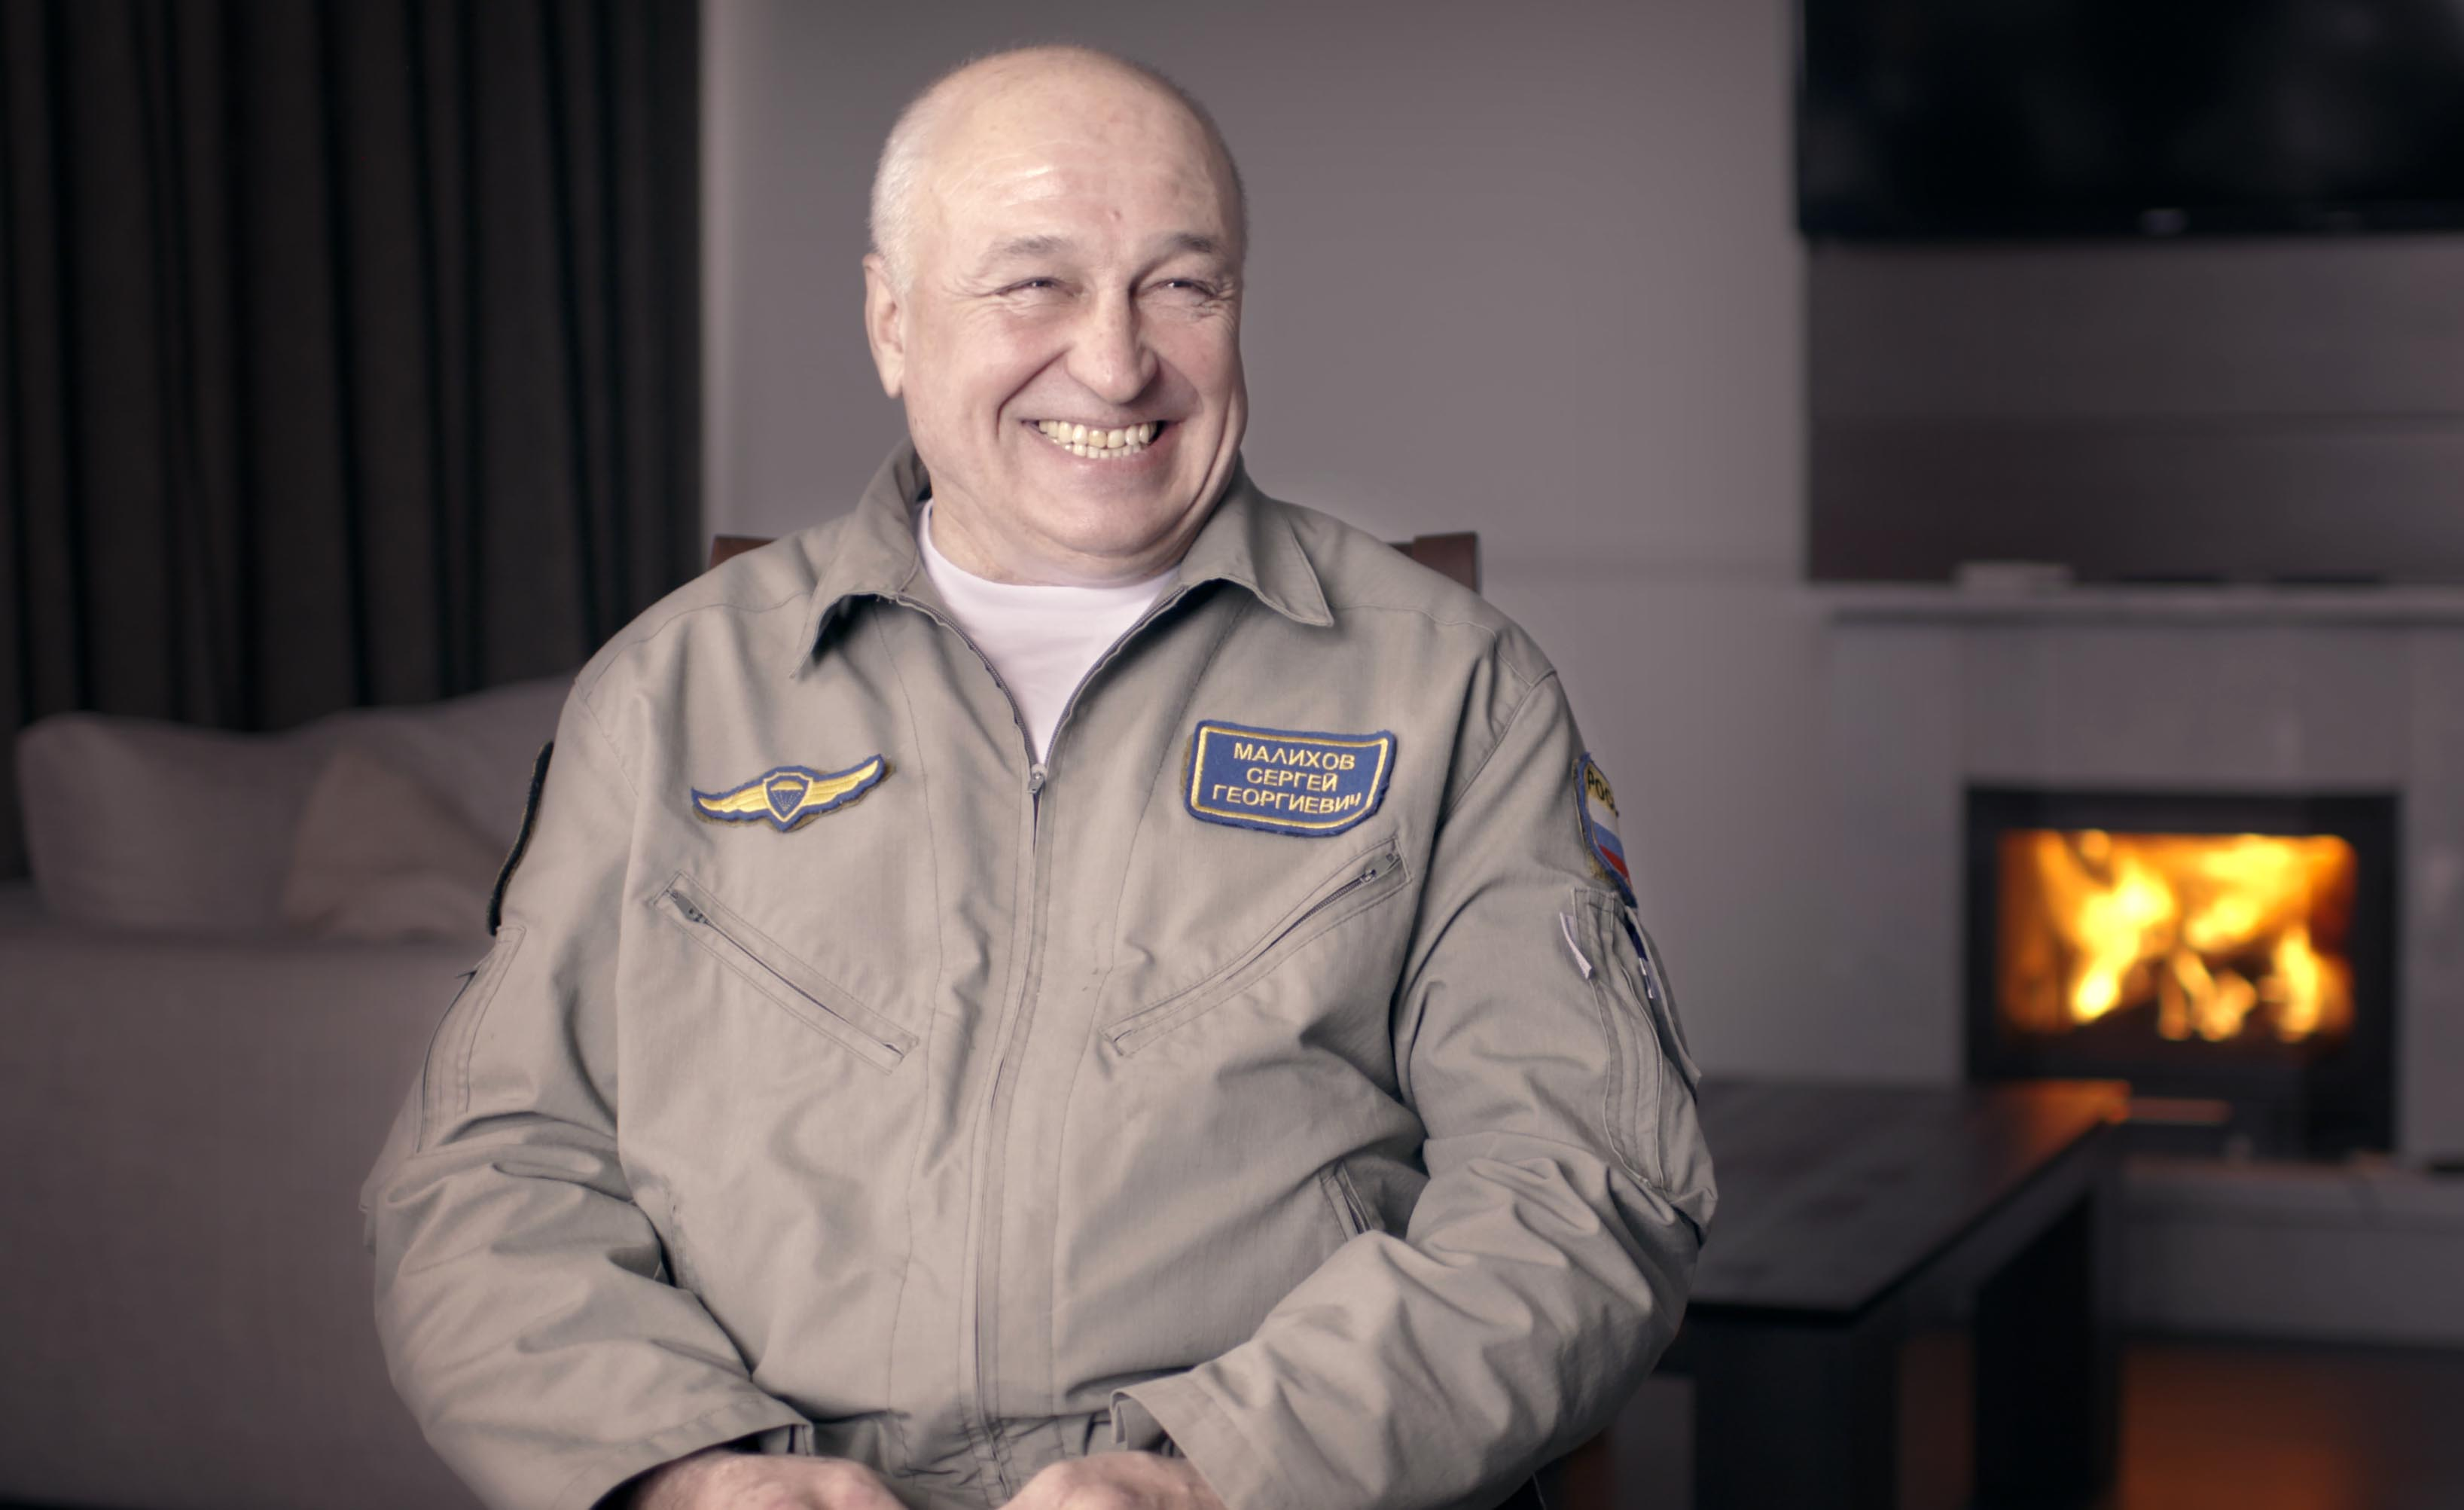 Sergei Malikhov, head of search and rescue efforts, photographed during an interview with TIME in Karaganda, Kazakhstan, Feb. 28, 2016.